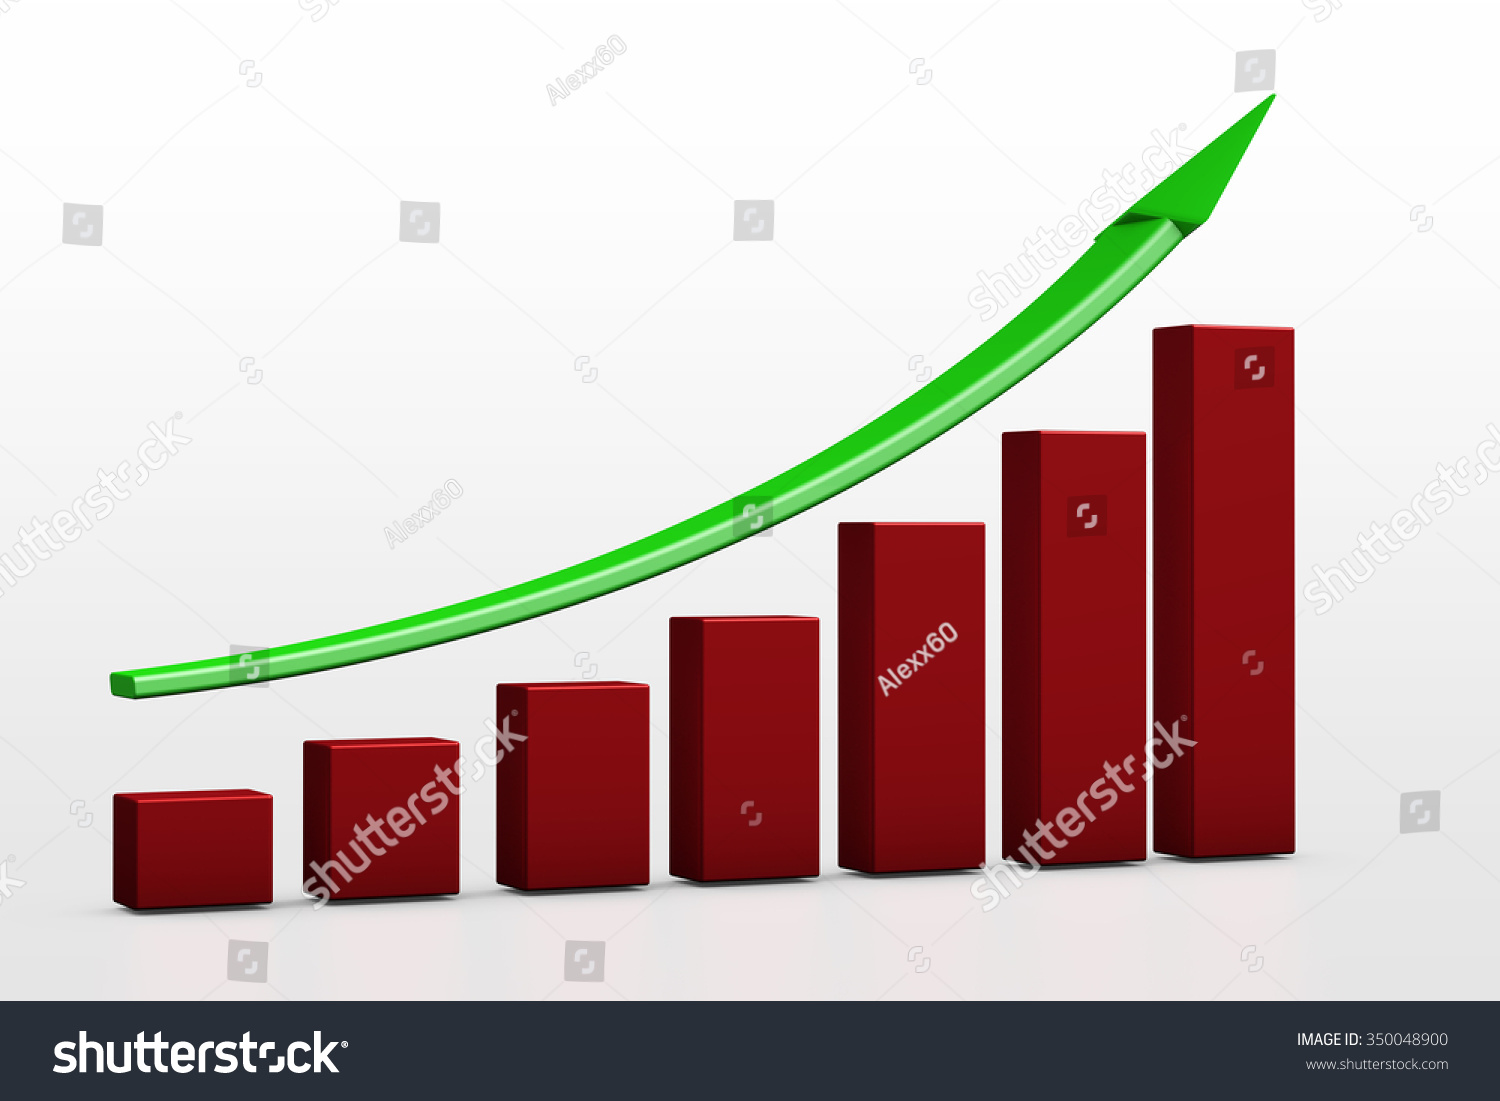 Business growth chart bars on white stock illustration 350048900 business growth chart bars on a white background nvjuhfo Gallery